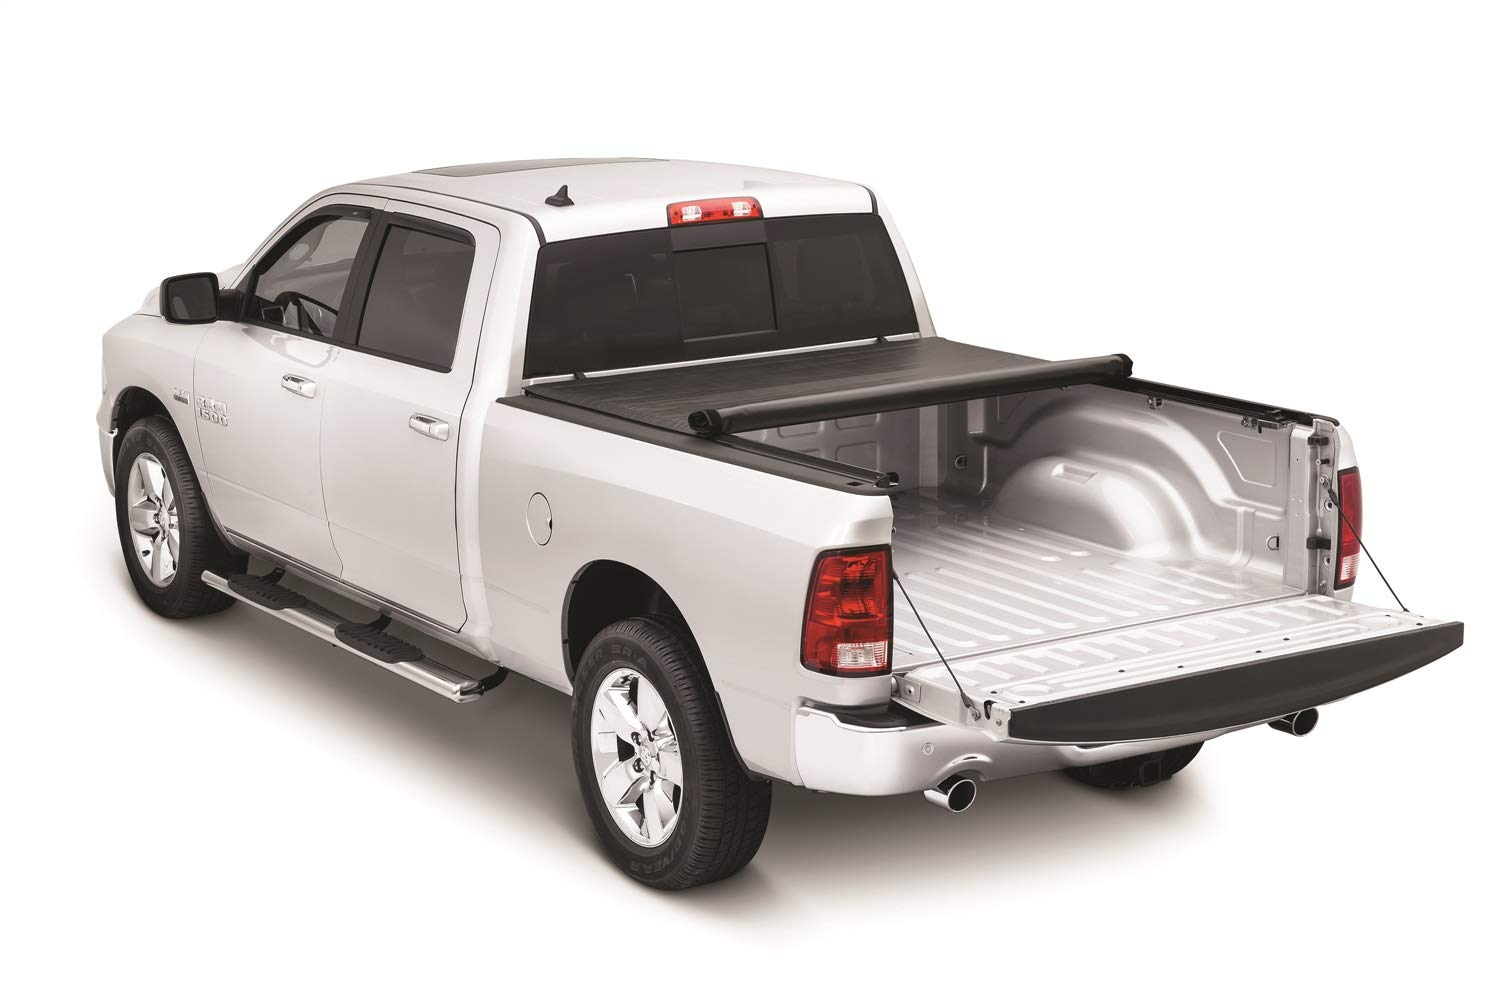 Tonno Pro HF-251 Black Hard Fold Truck Bed Tonneau Cover 2009-2018 Dodge Ram 1500 Fits 5.7 Bed Excludes Beds with RamBox